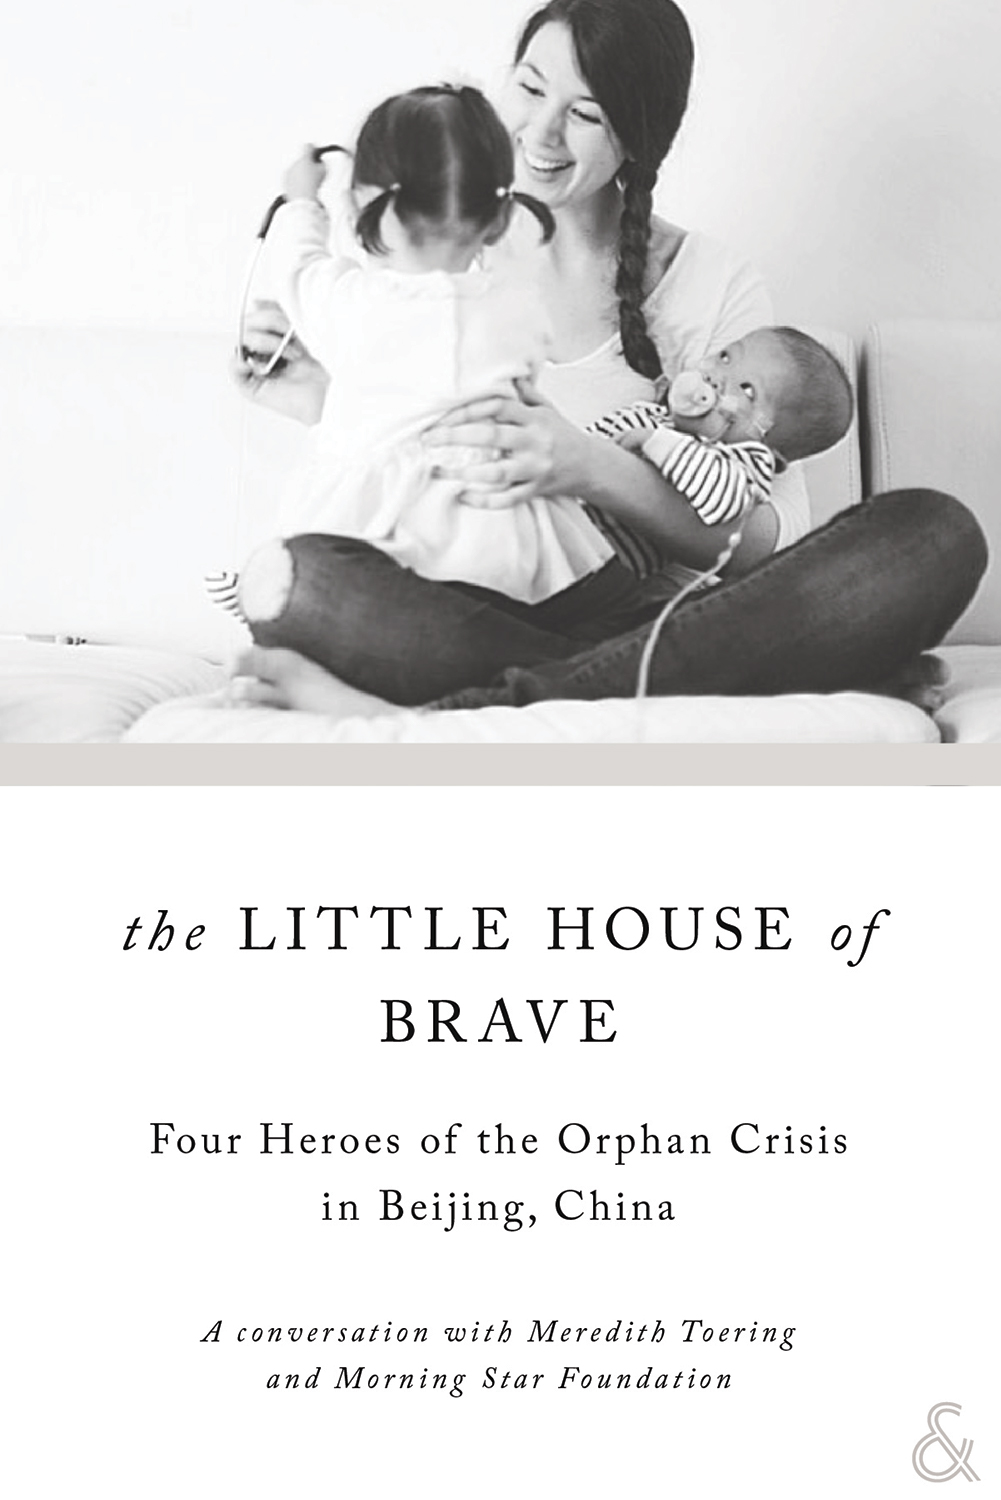 The Little House of Brave: Four Heroes of the Orphan Crisis